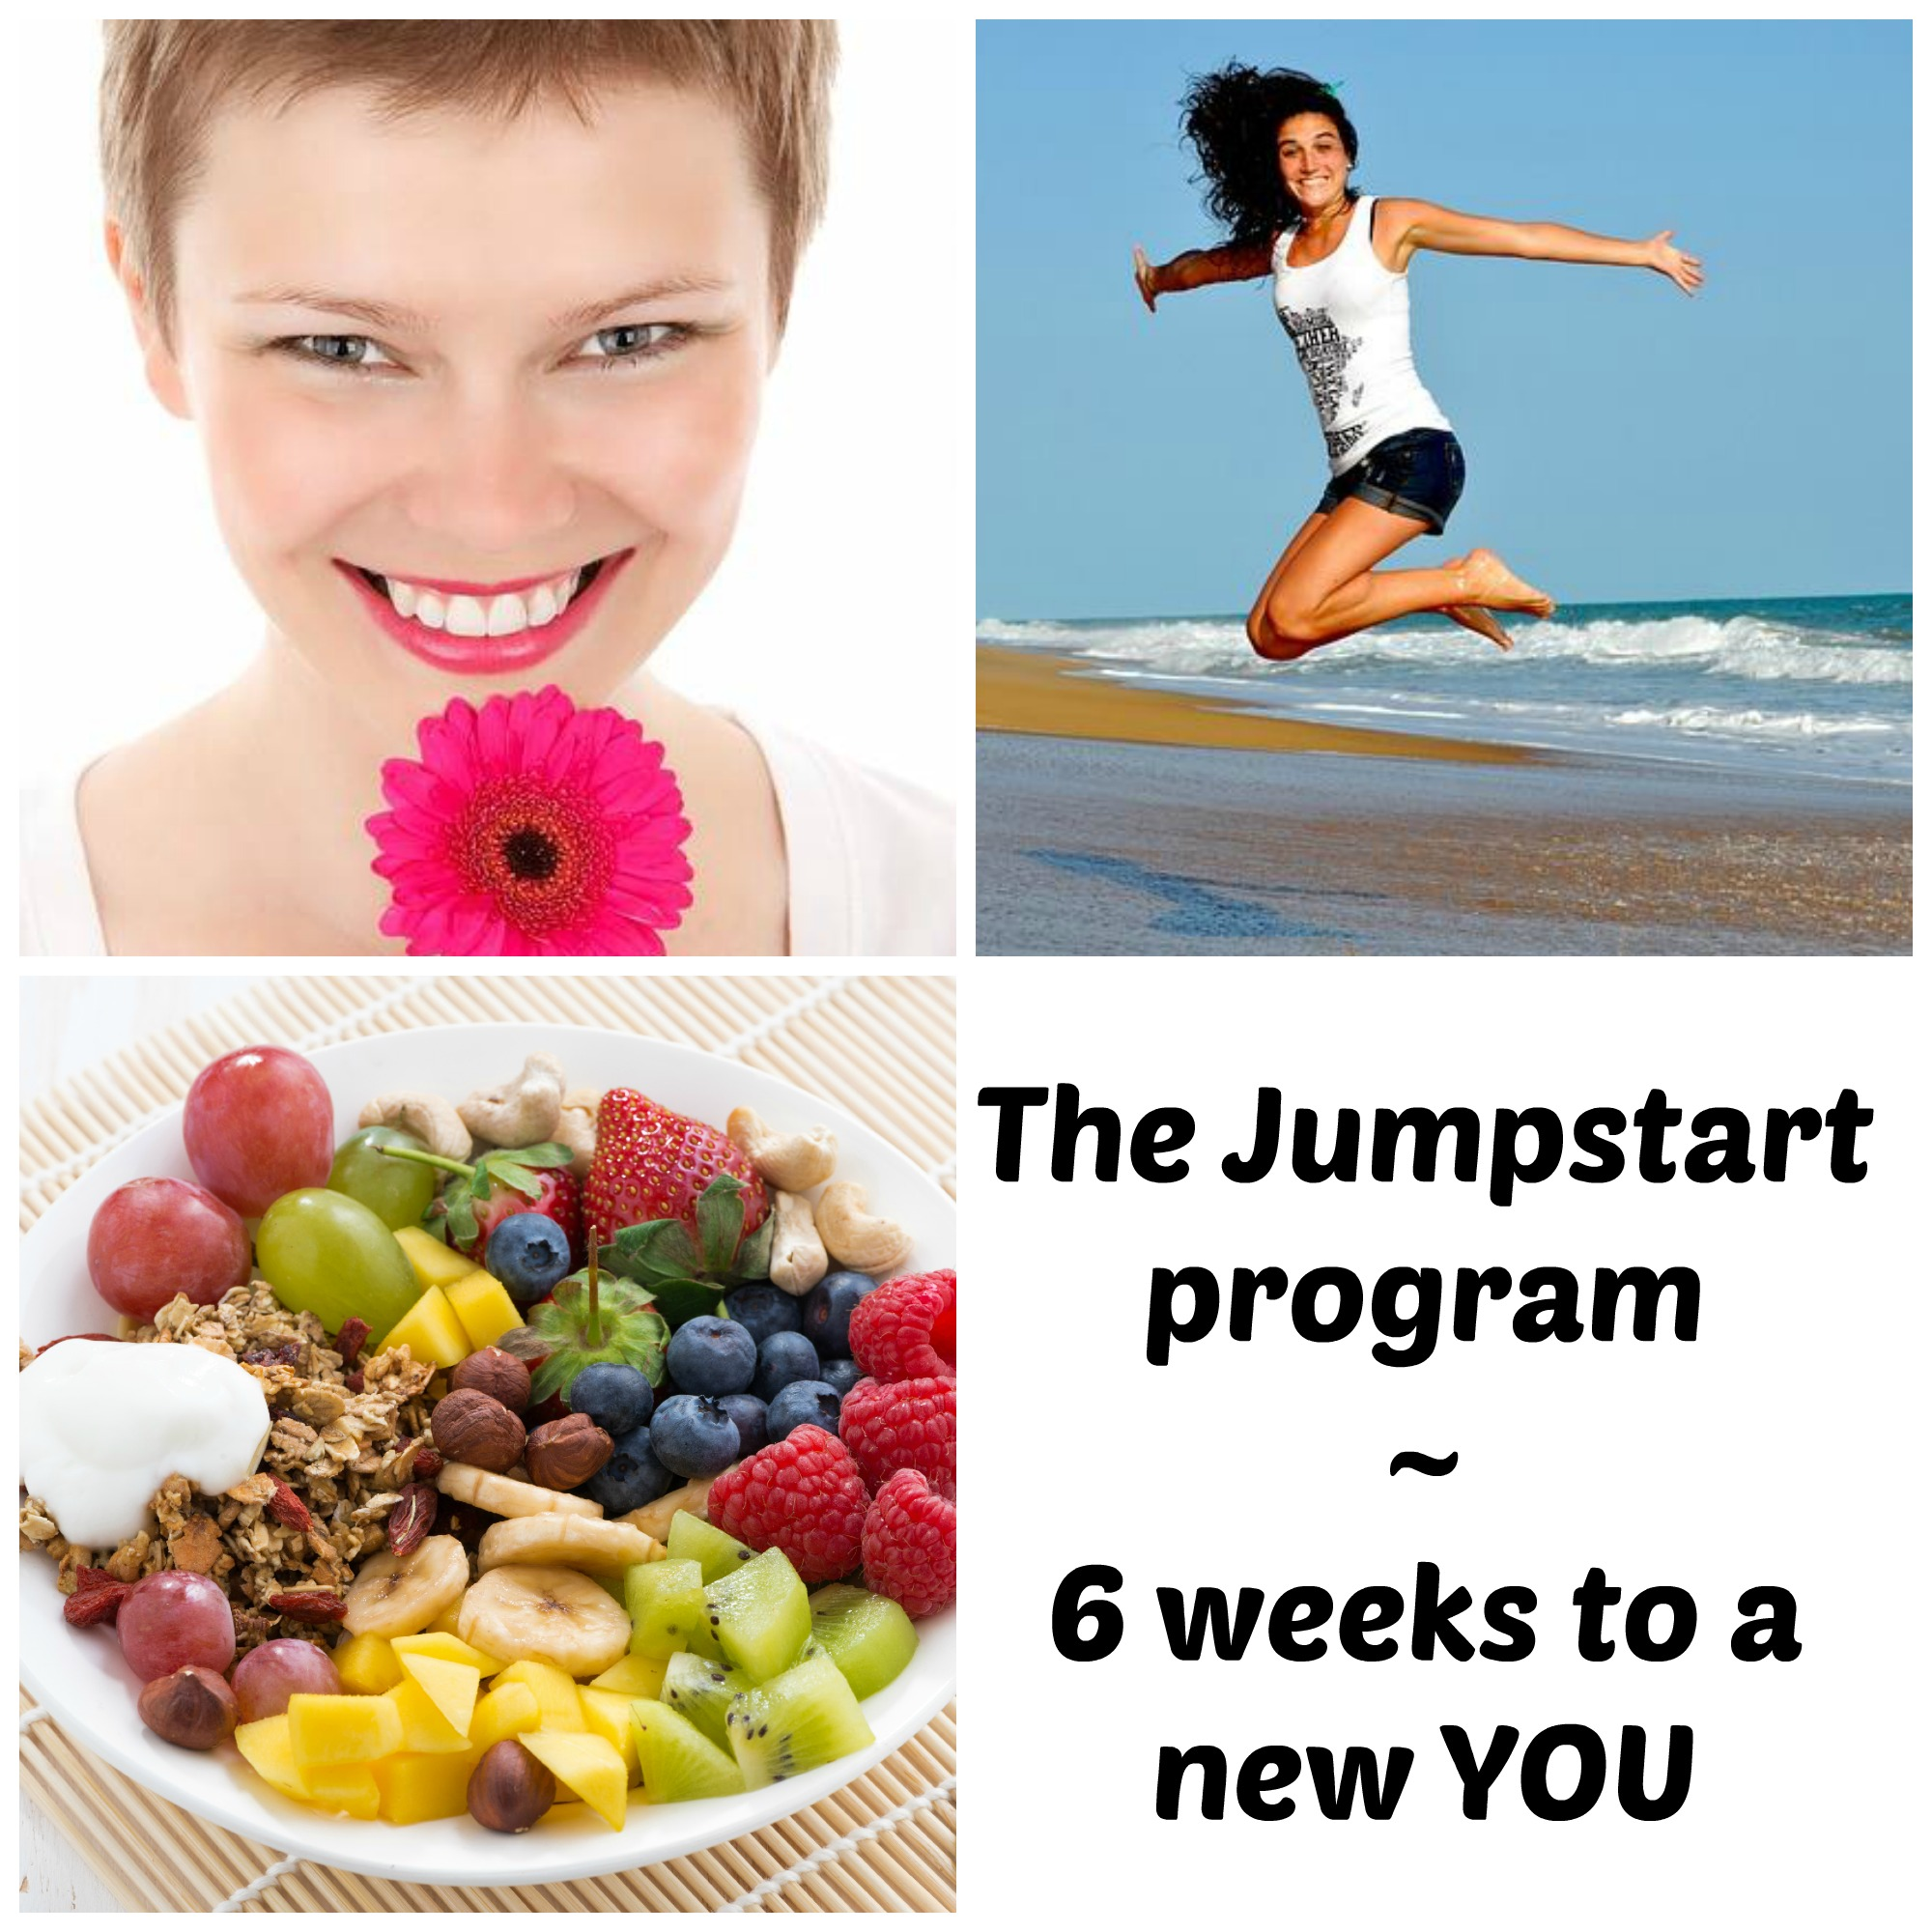 The jumpstart program